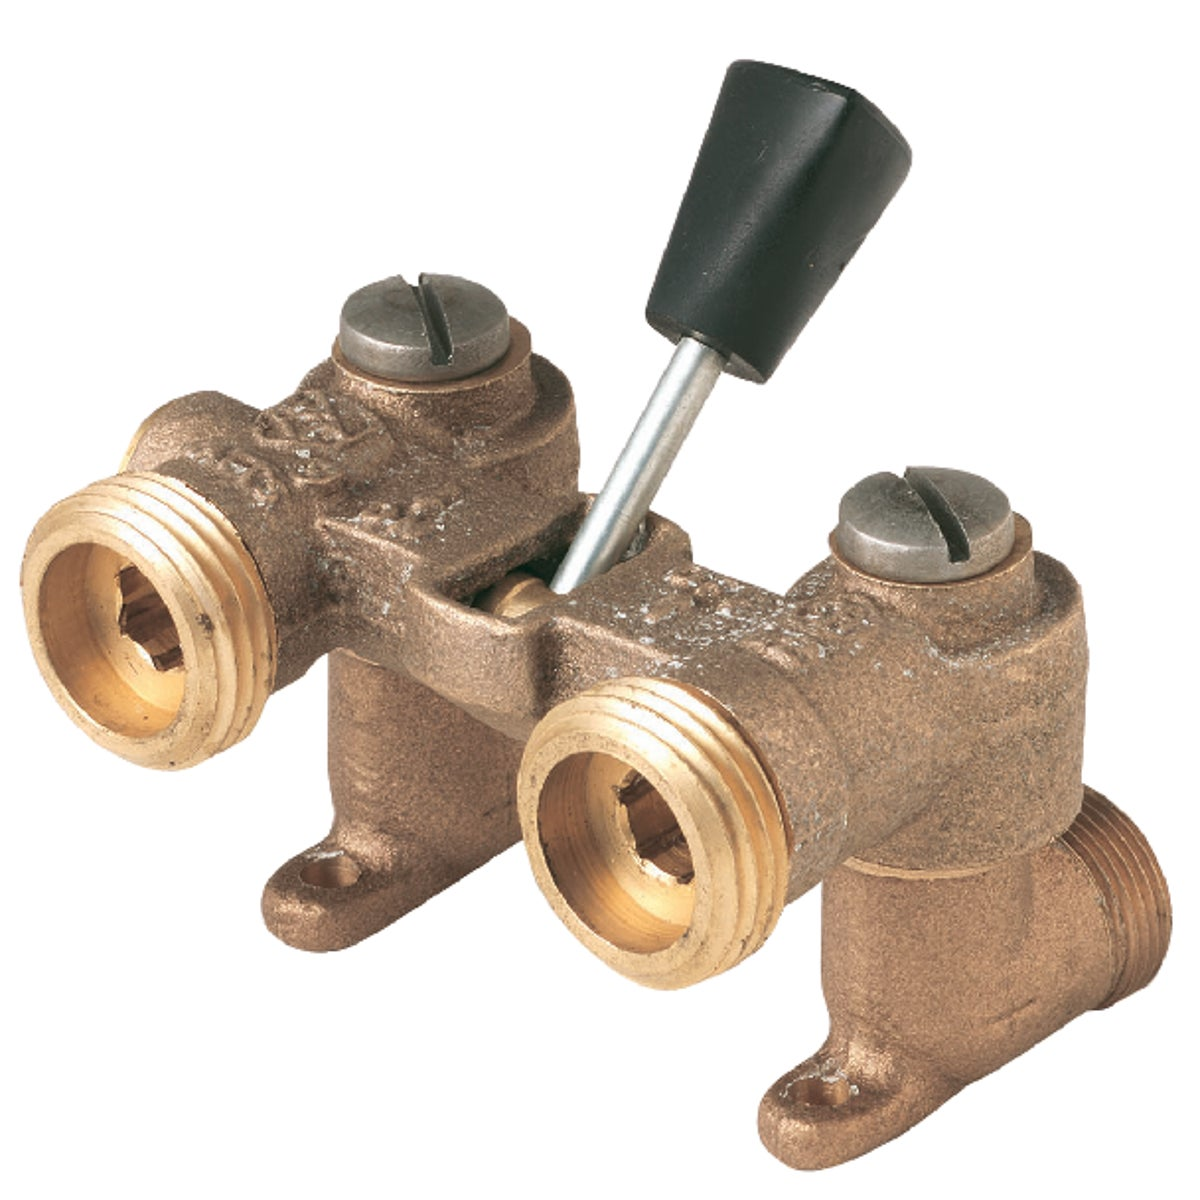 DUOCL LAUNDRY VALVE - DP2-M2 by Watts Regulator Co